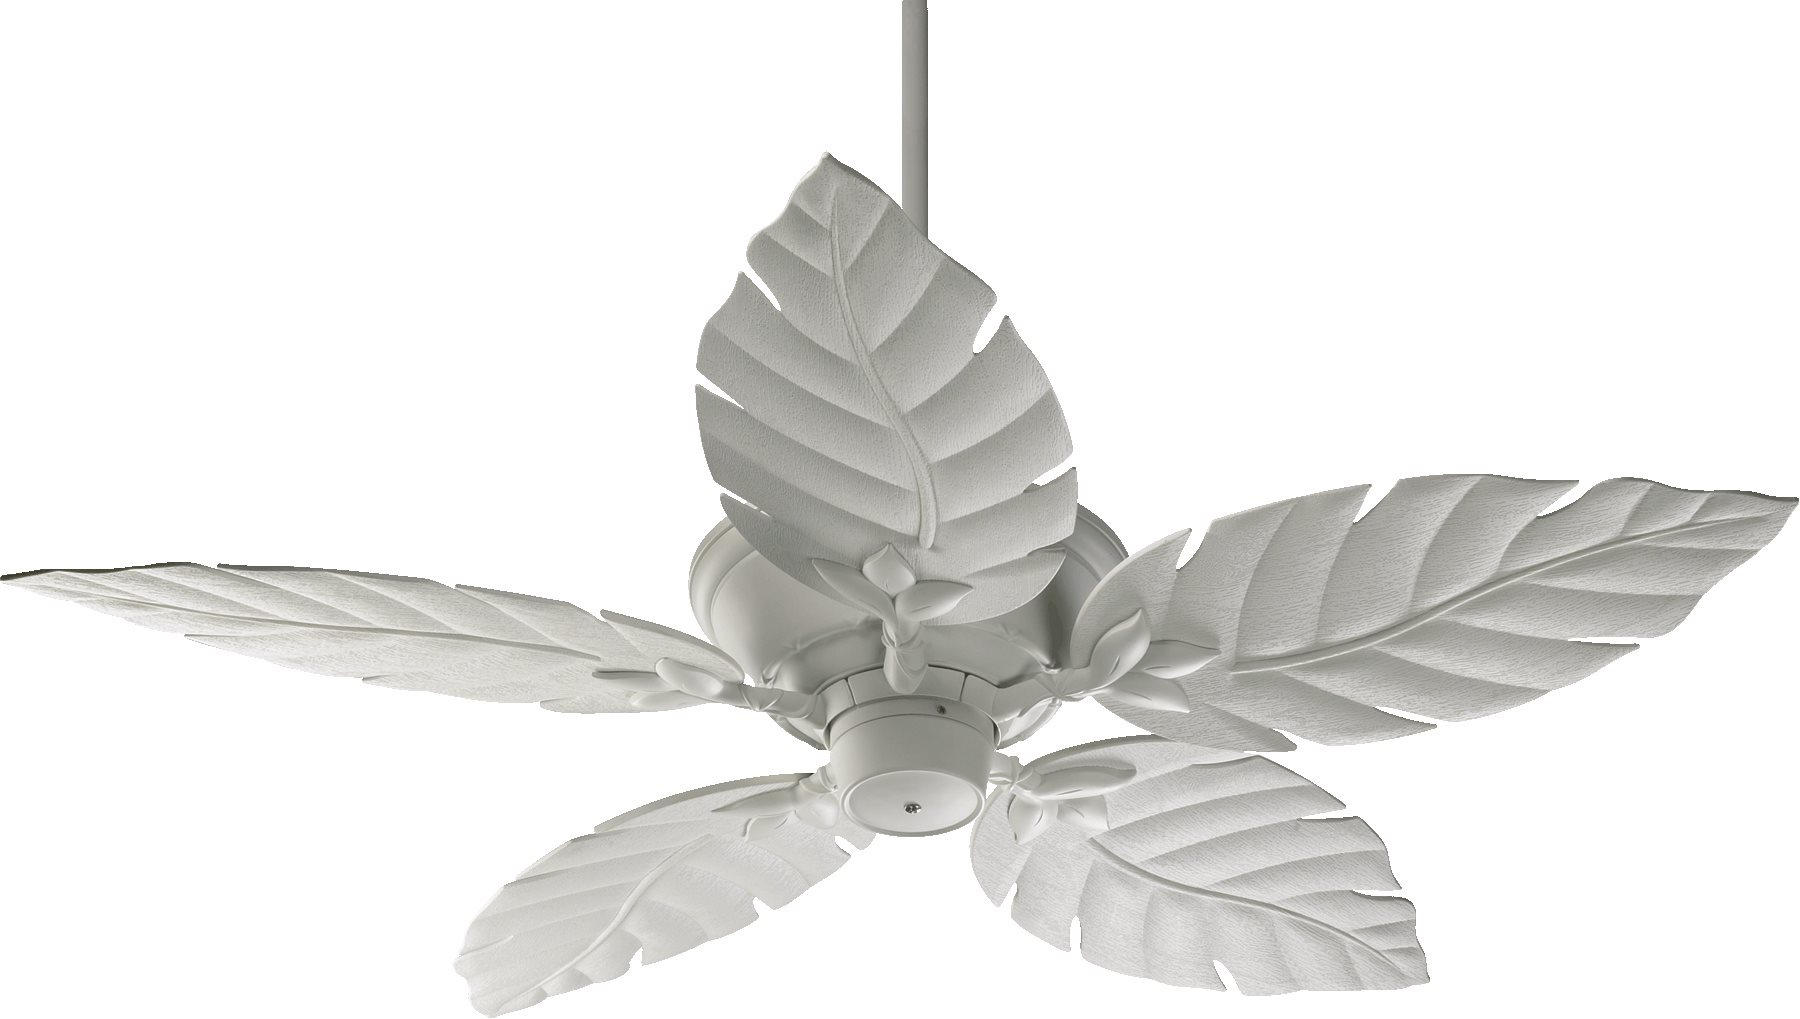 Quorum lighting 135525 monaco 52 patio tropical ceiling fan qr 135525 8 studio white finish with studio white blades aloadofball Image collections